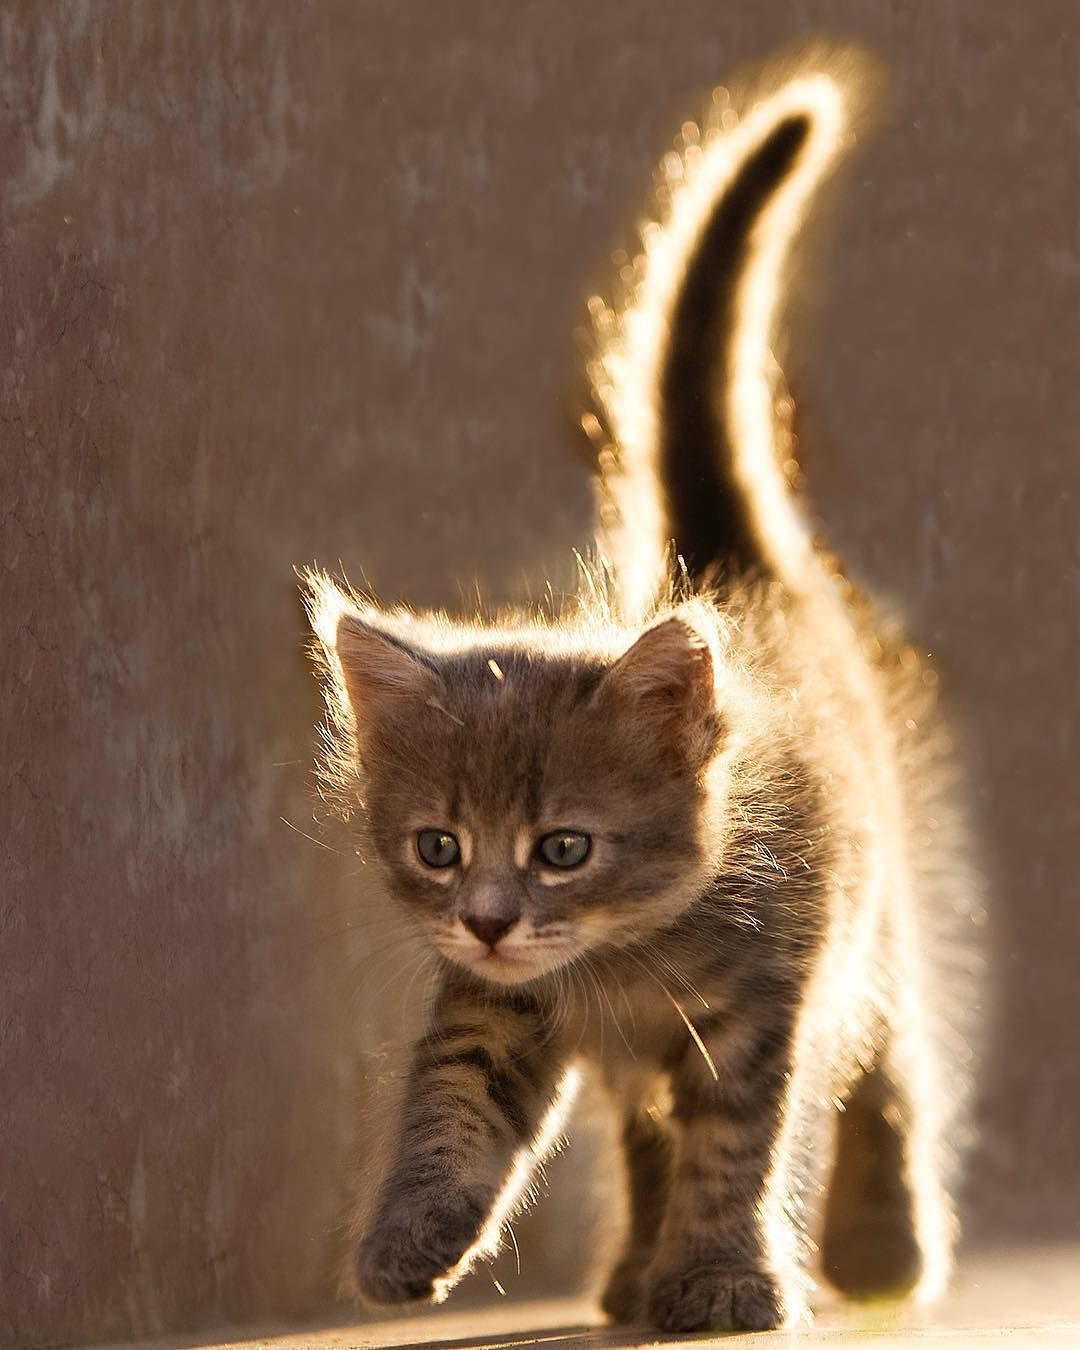 Photo Serhat Demiroglu Photography Congrats Tebrikler Selected By 17tanju Creativityfound Pursuepr Kittens Cutest Cats Cute Cats